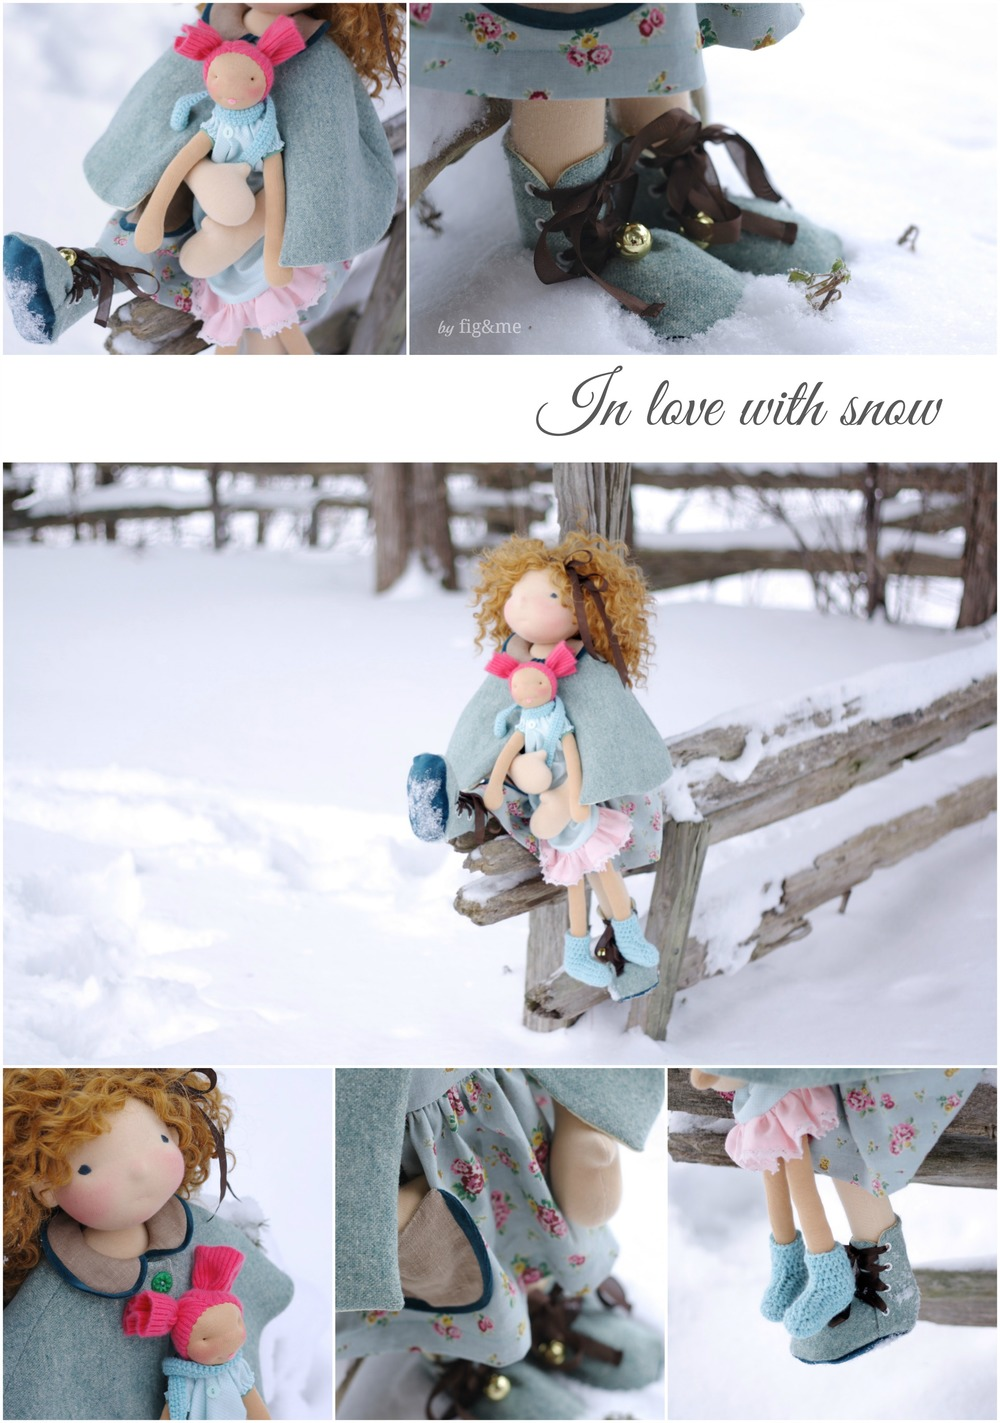 We love snow! by Fig&me.